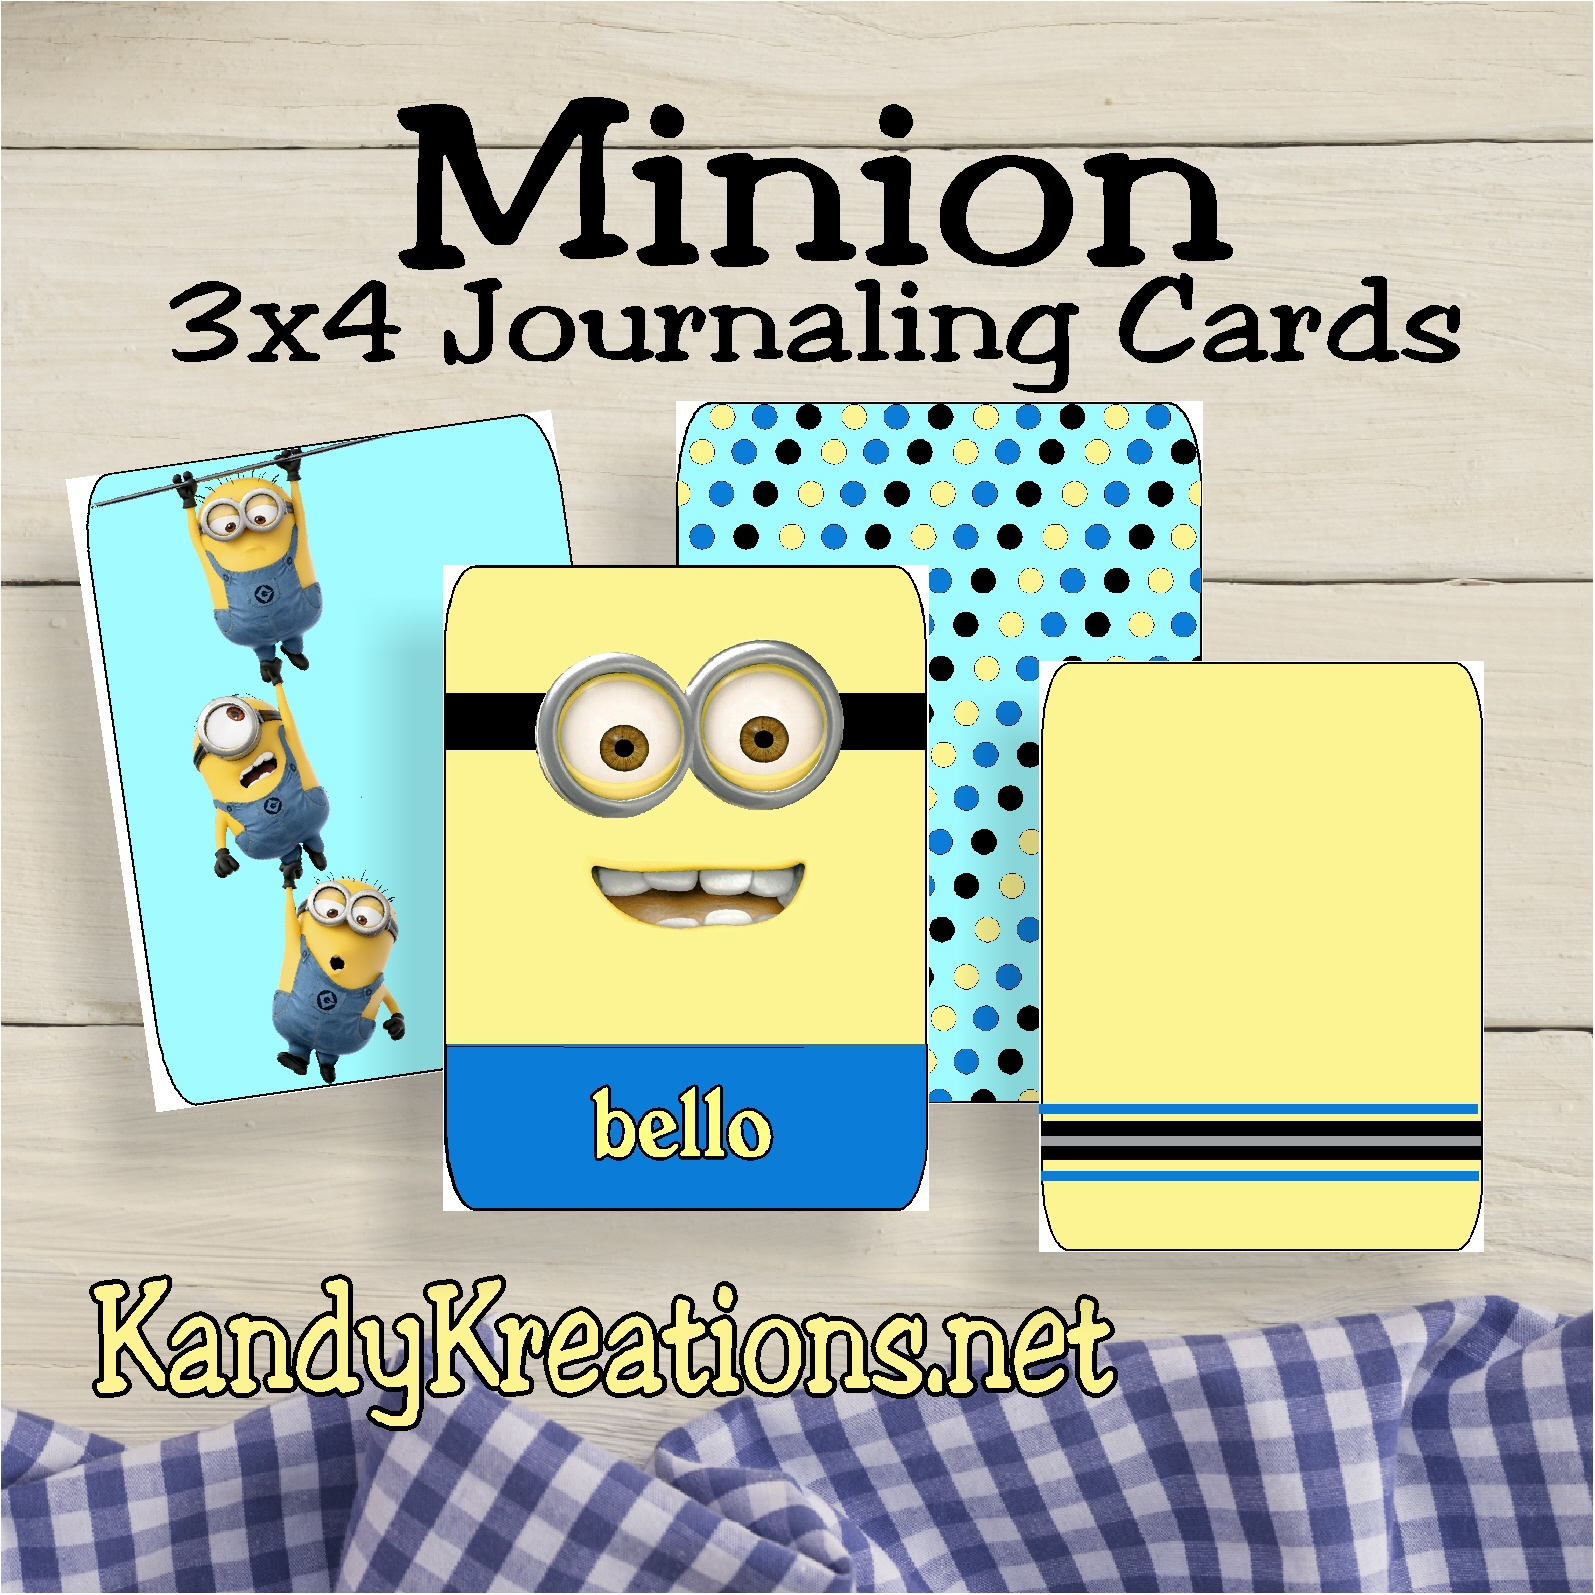 http://www.kandykreations.net/2015/07/minion-movie-journaling-cards.html